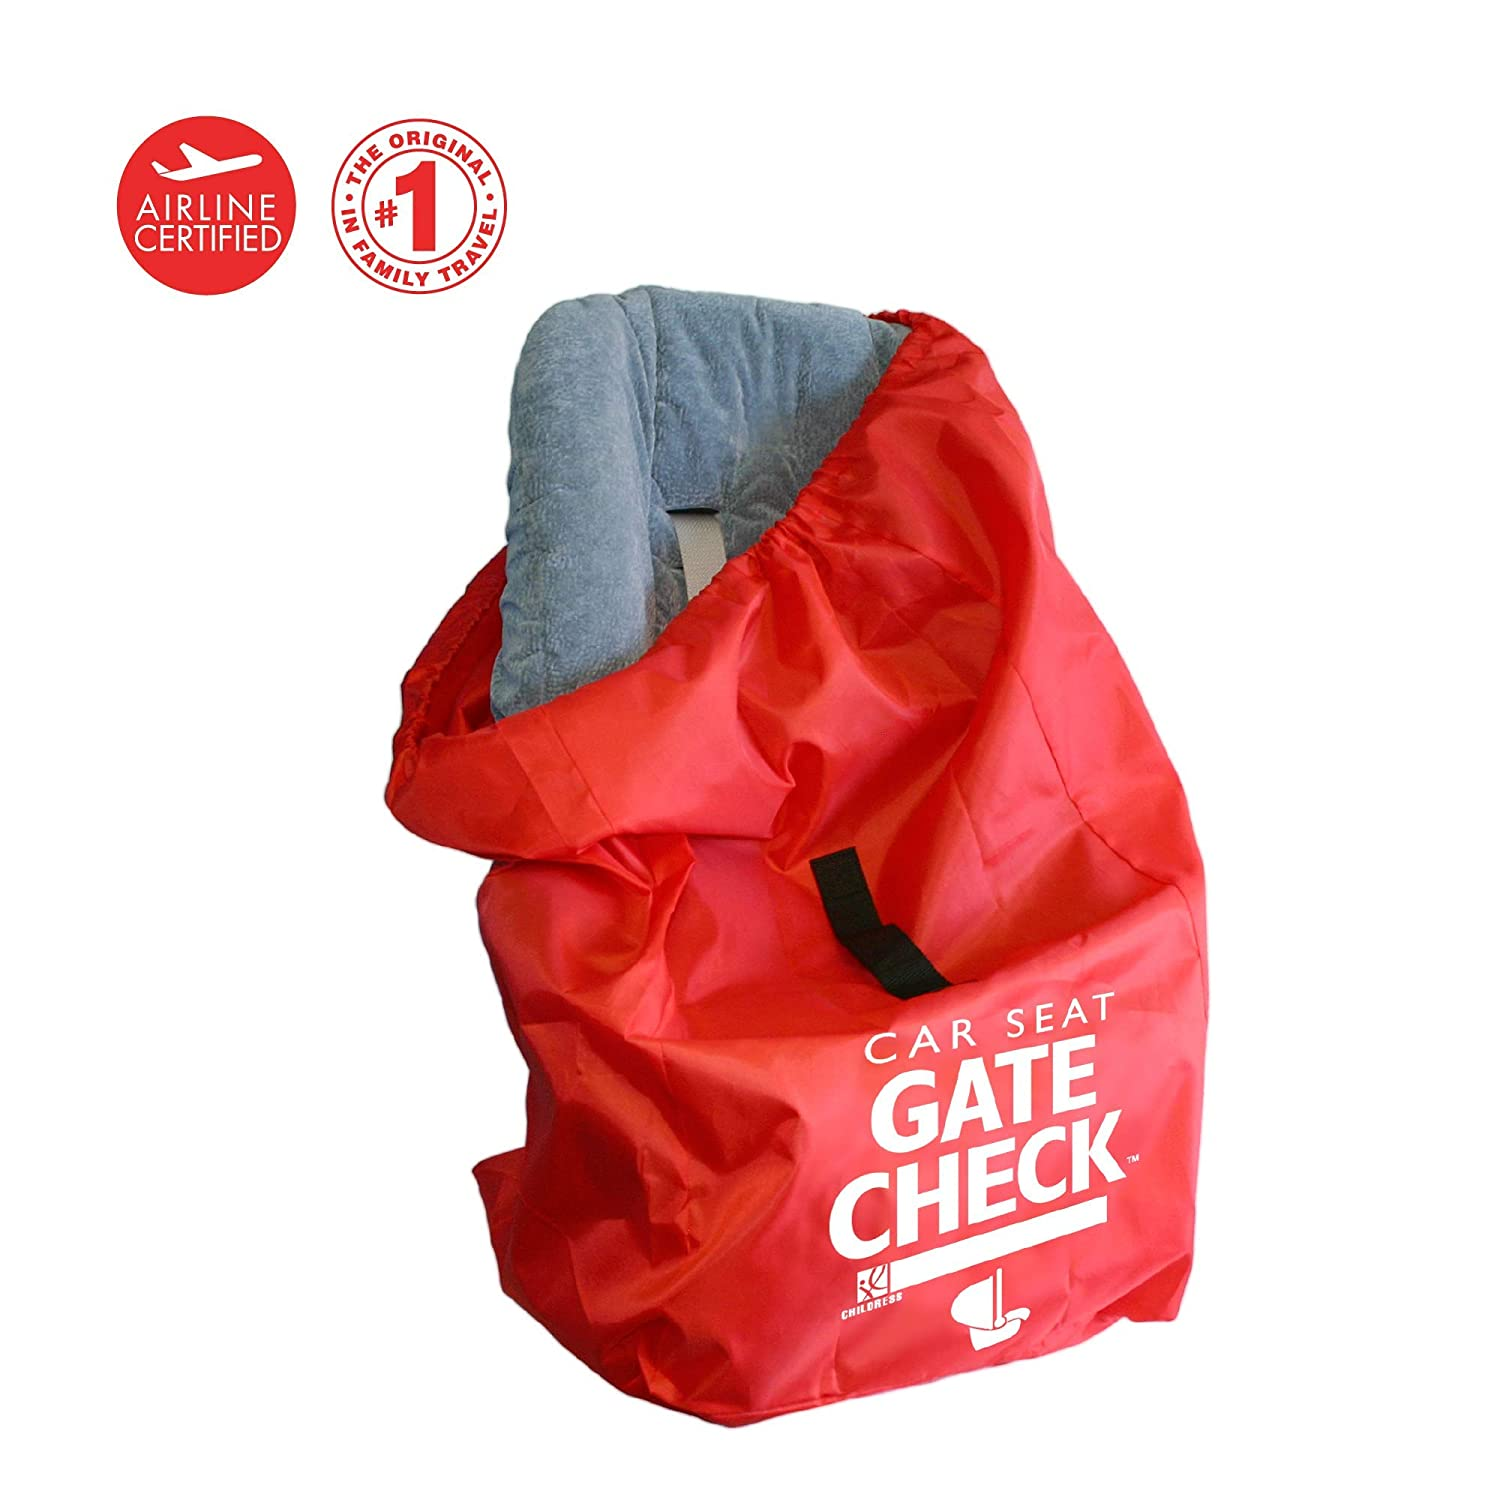 J. L. Childress Gate Check Air Travel Bag for Car Seats, Red 2110